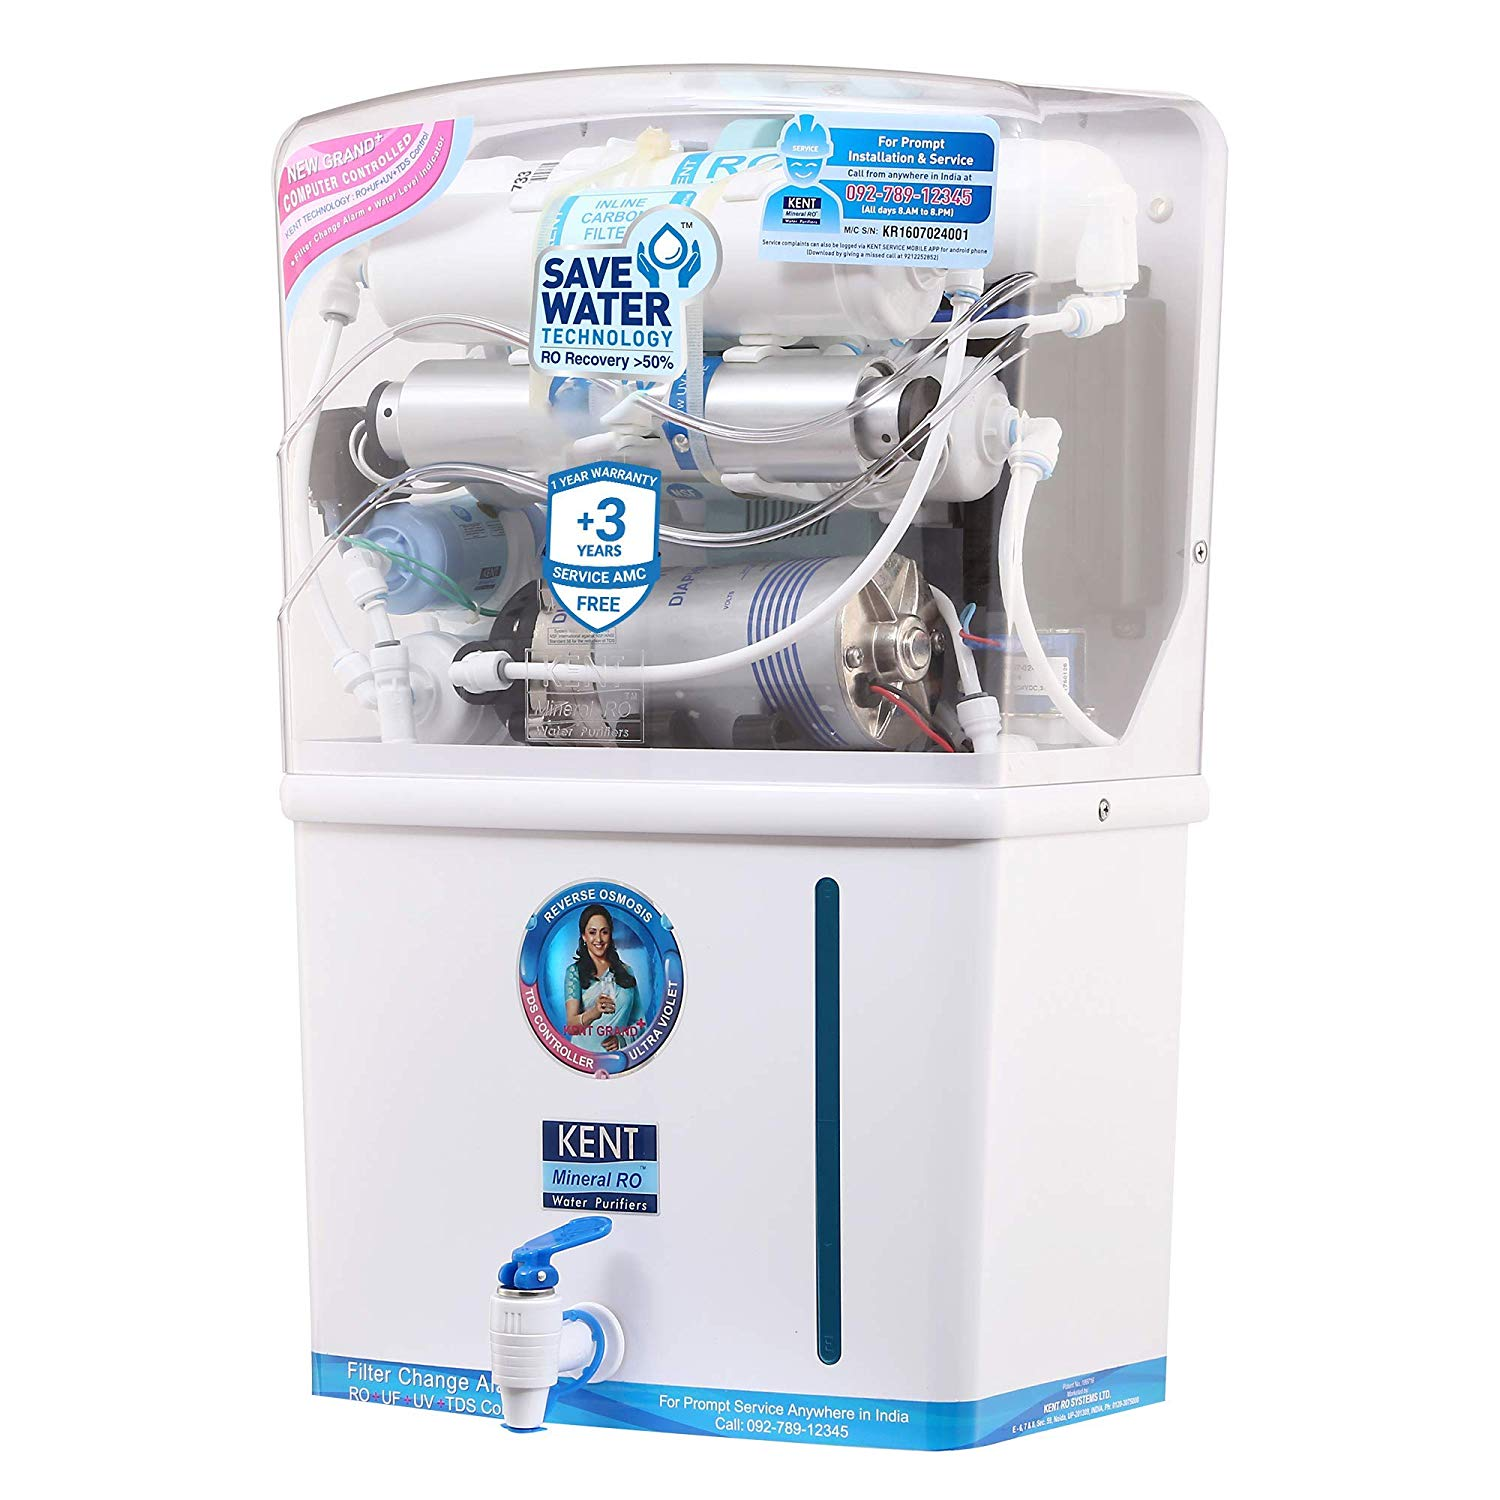 Kent Grand Plus Litre 8 L RO + UV +UF Water Purifier Photo1